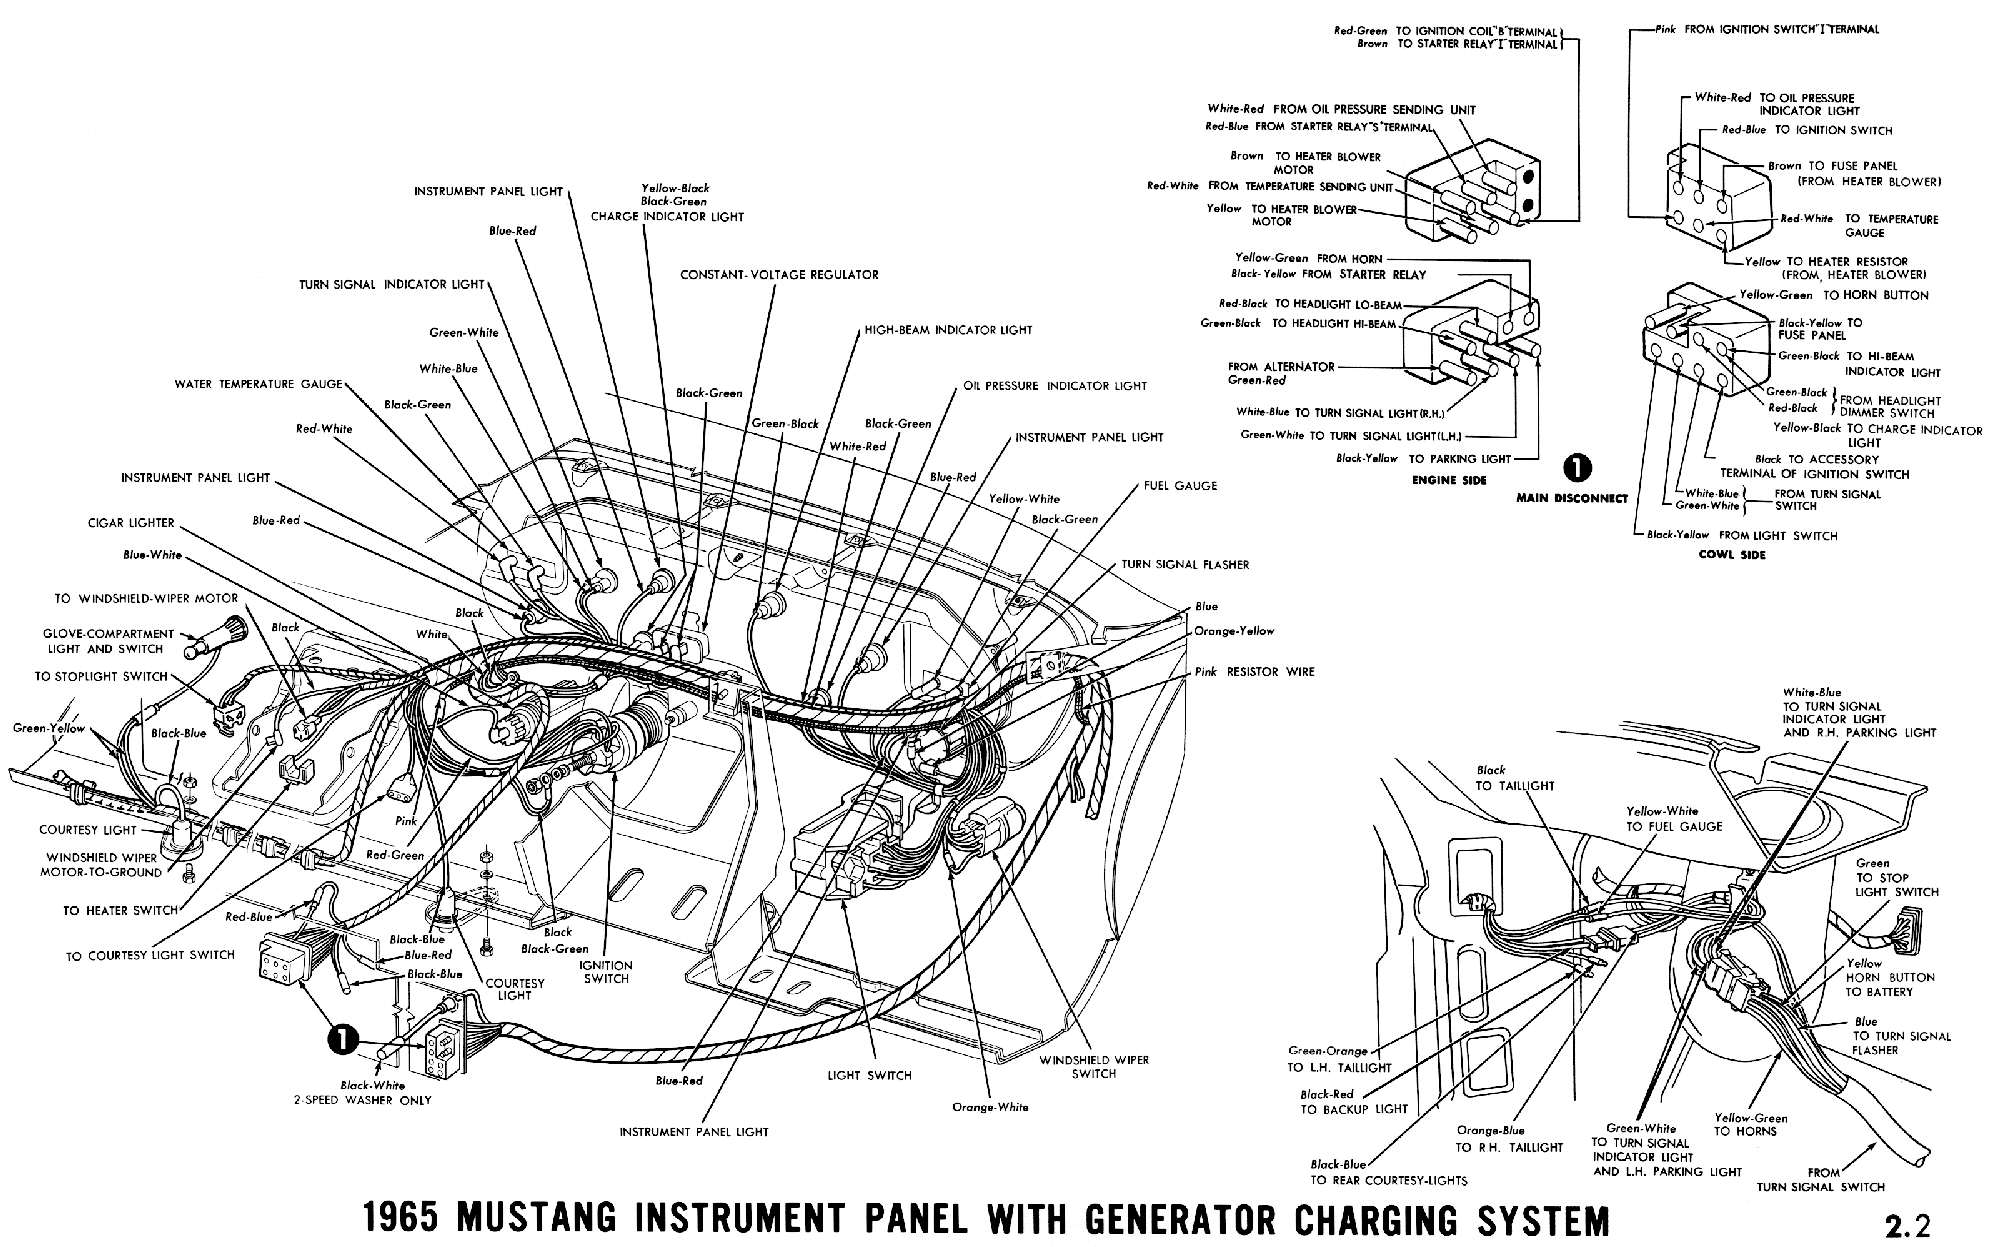 1965 Mustang Wiring Diagram Opinions About 2000 Toyota Tundra Fuel Filter Free Download Finally Getting Some Work Done Again Vintage Forums Color